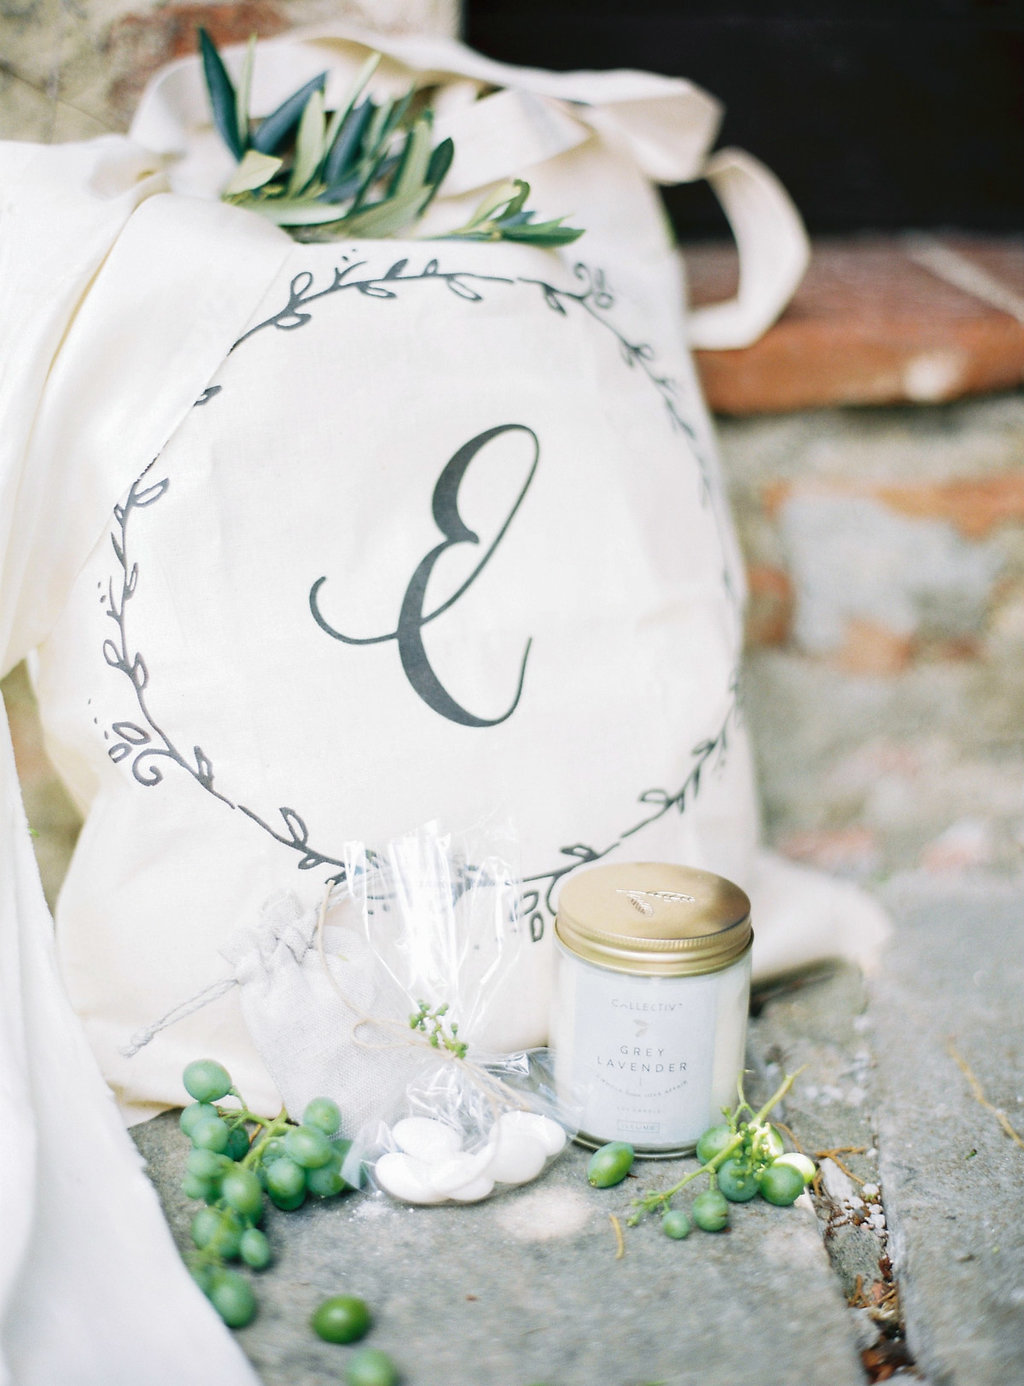 wedding favor bags - photo by Katie Grant Photography http://ruffledblog.com/classically-beautiful-intimate-wedding-in-tuscany